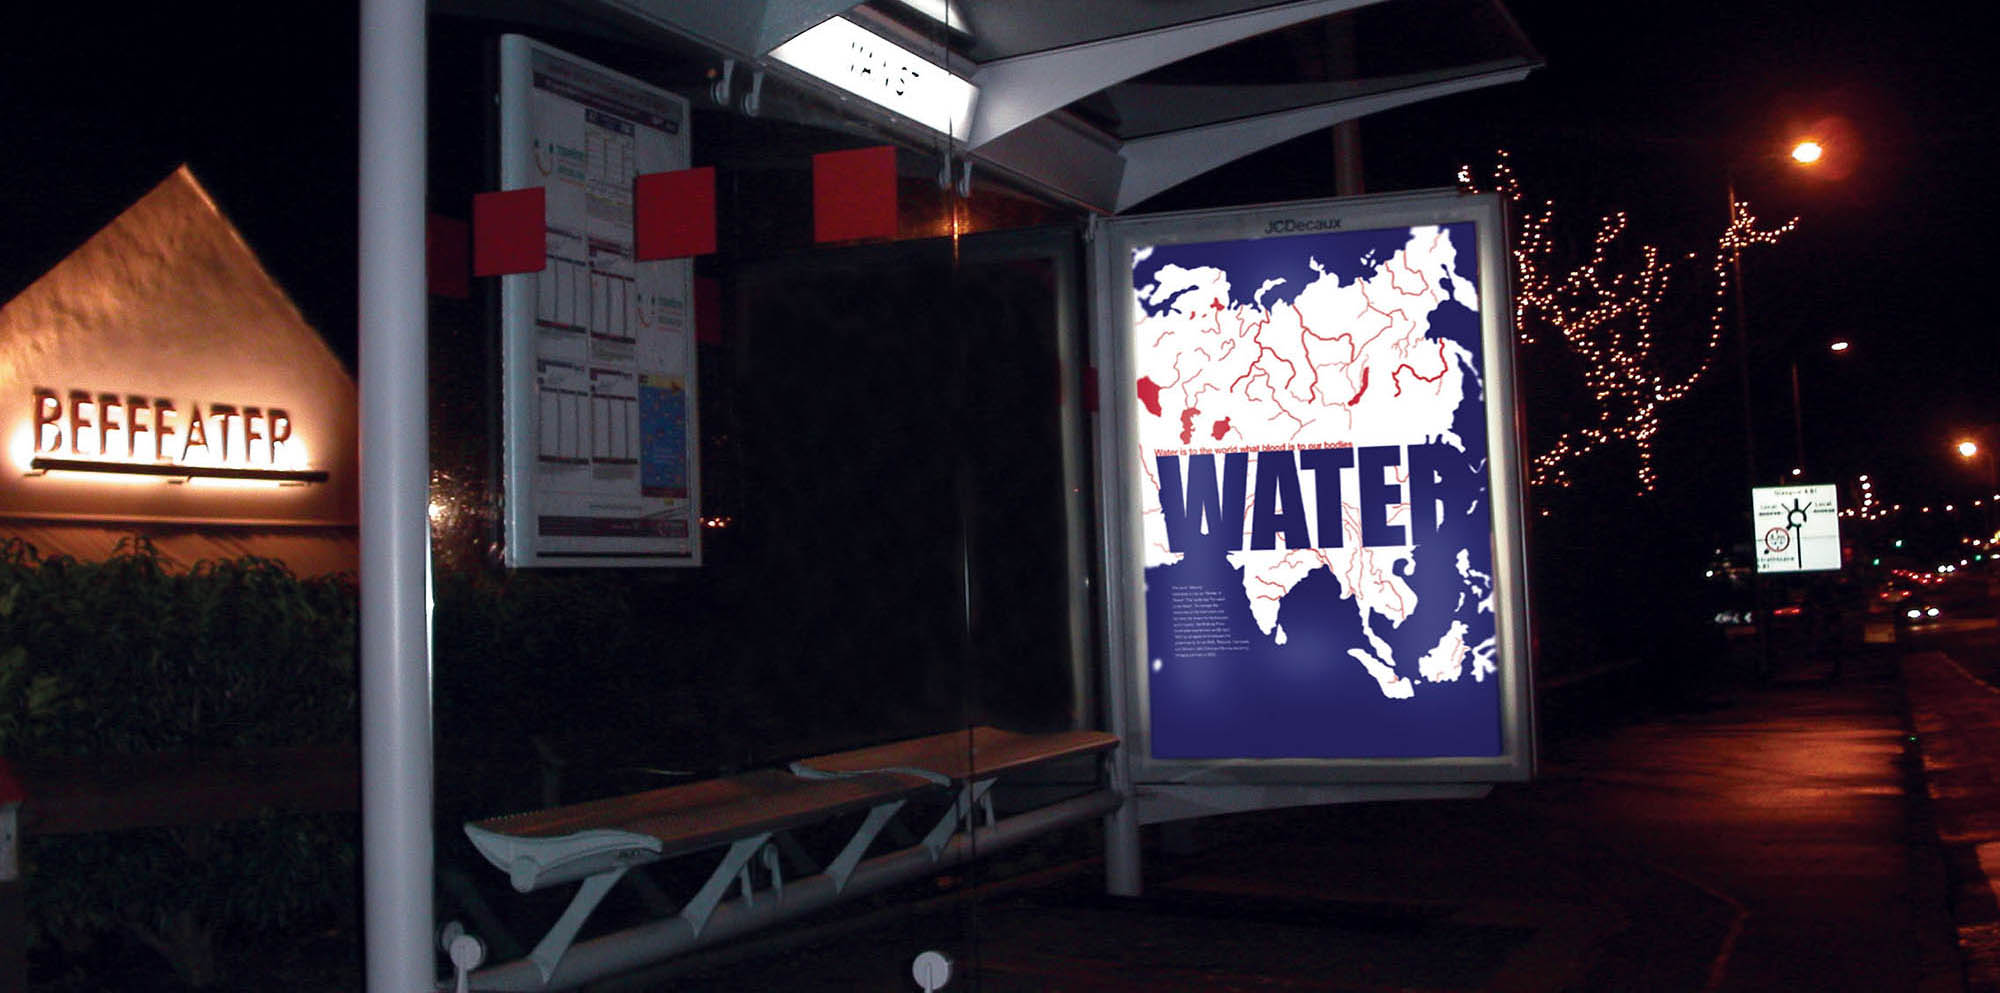 Scottish Water Advertising Campaign